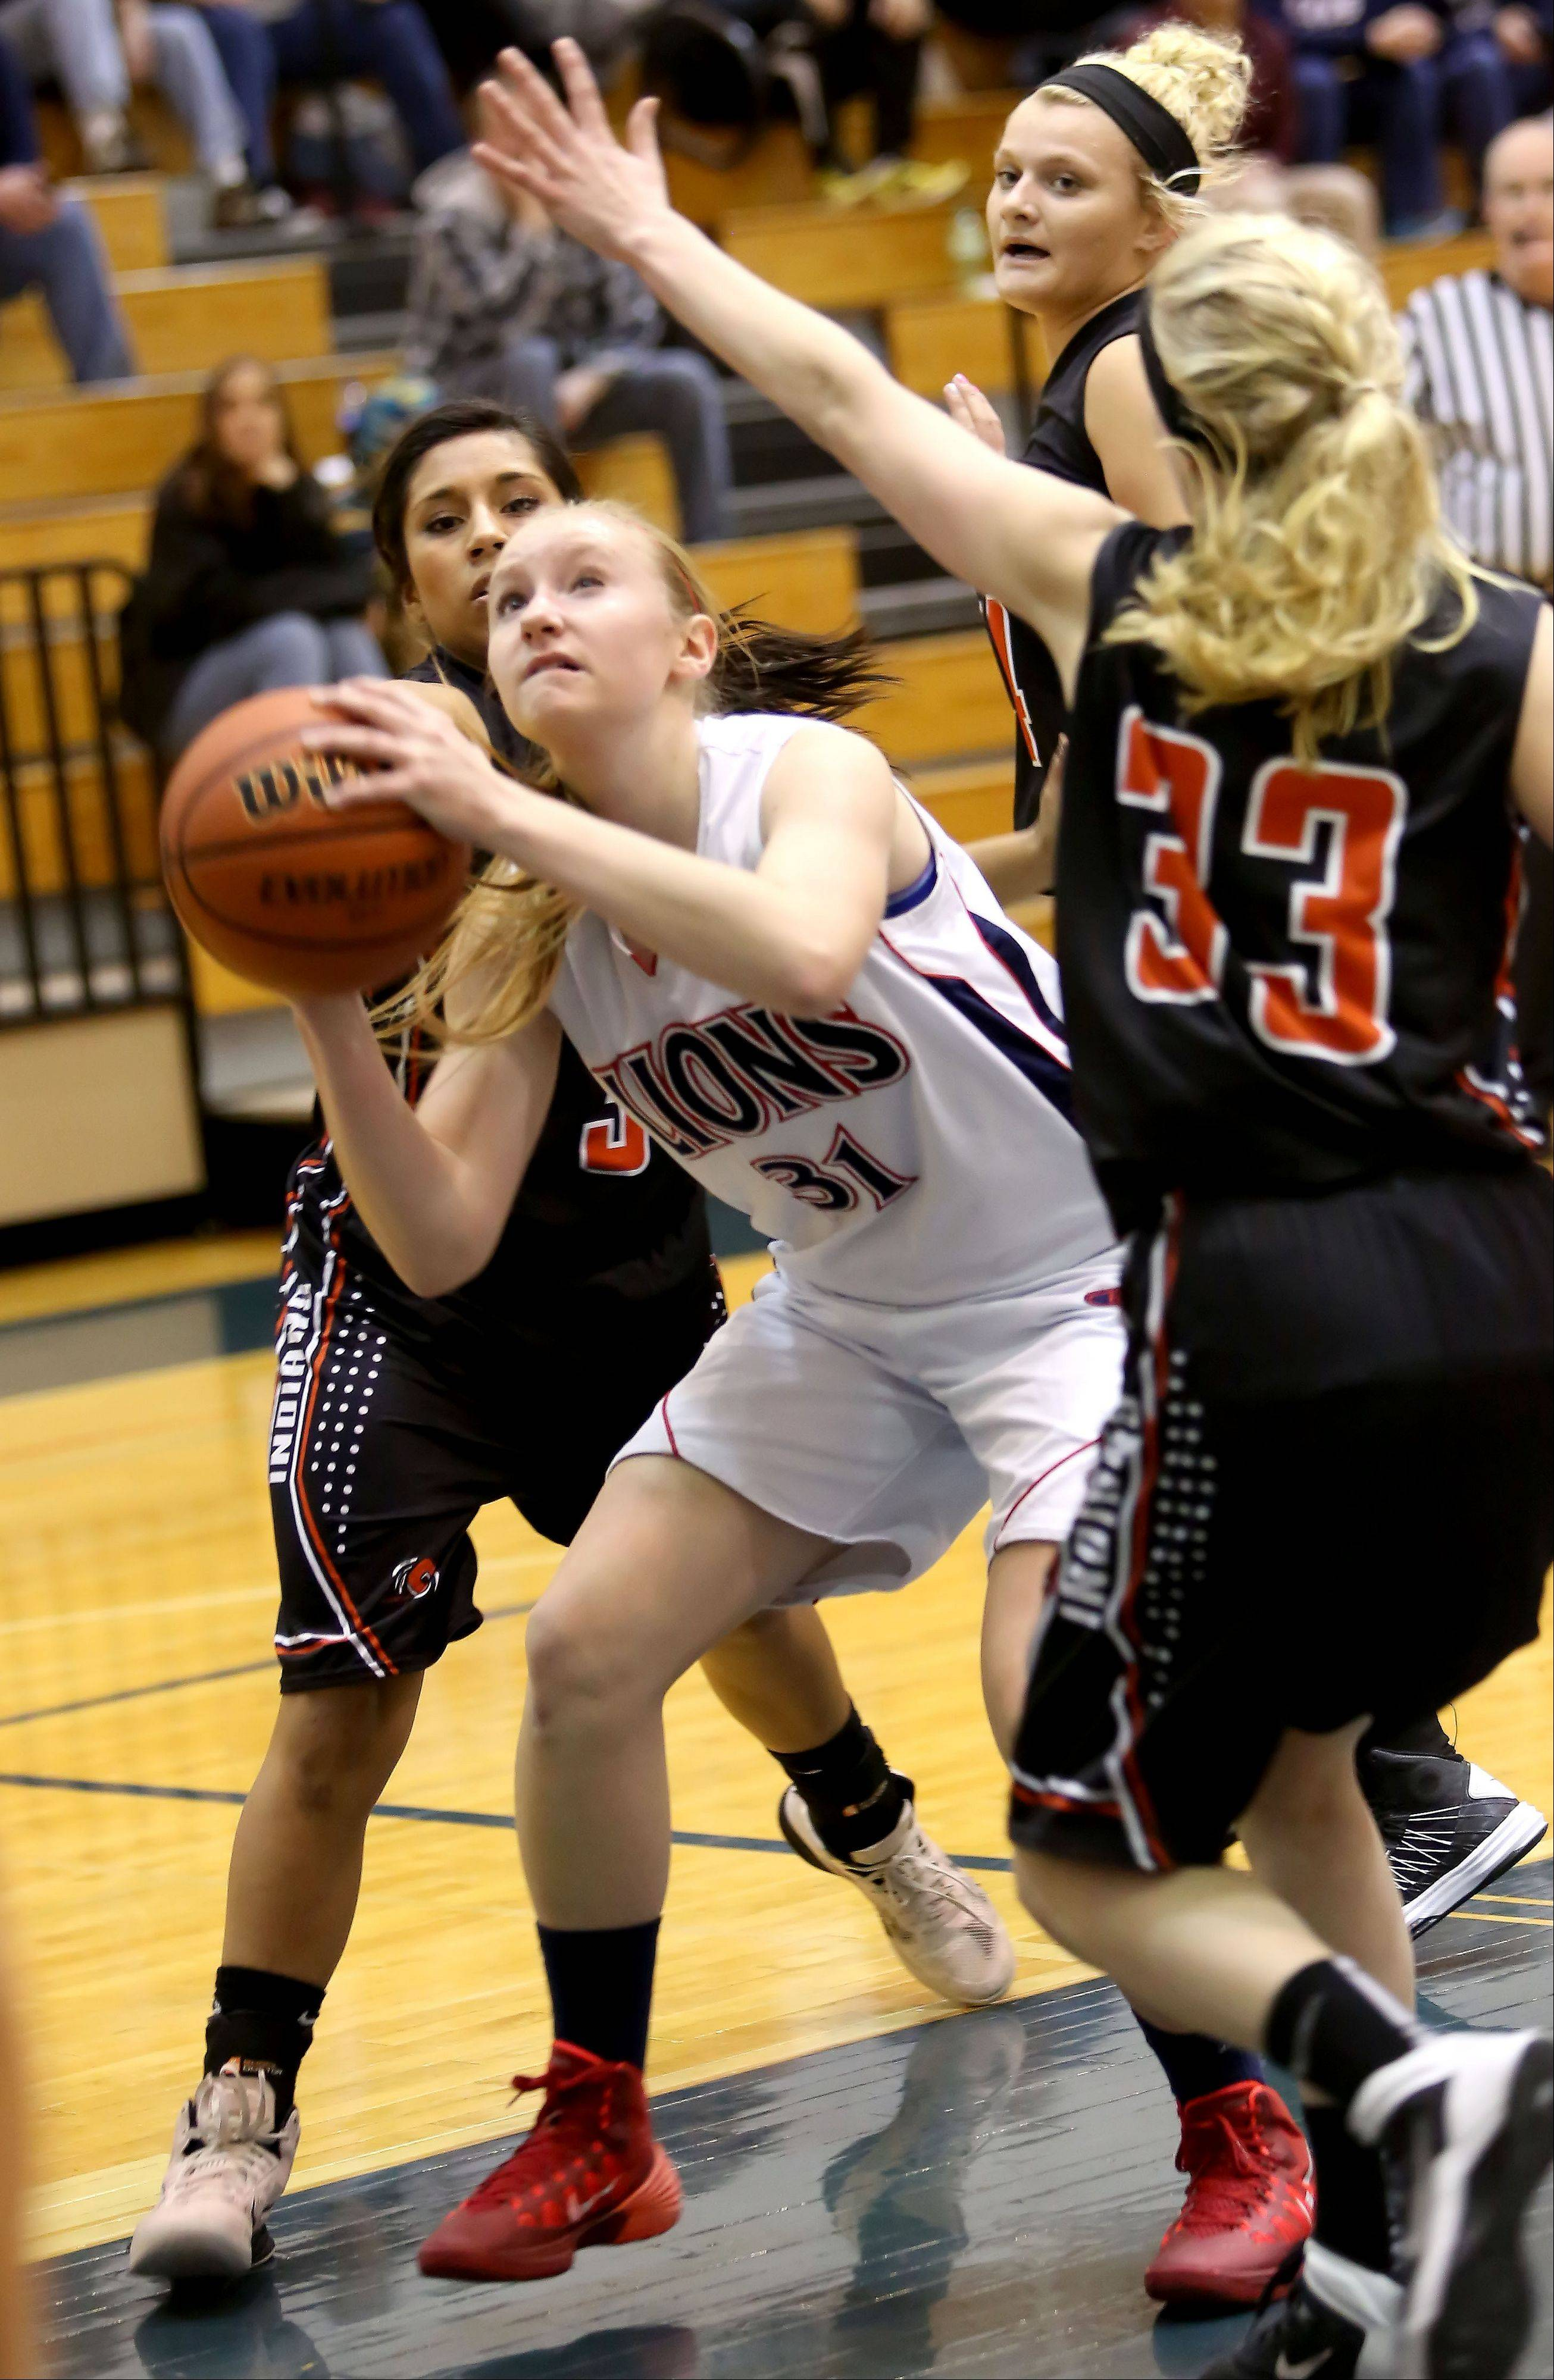 Lisle's Sarah Mogensen looks for room to shoot in action against Sandwich during girls basketball on Monday.